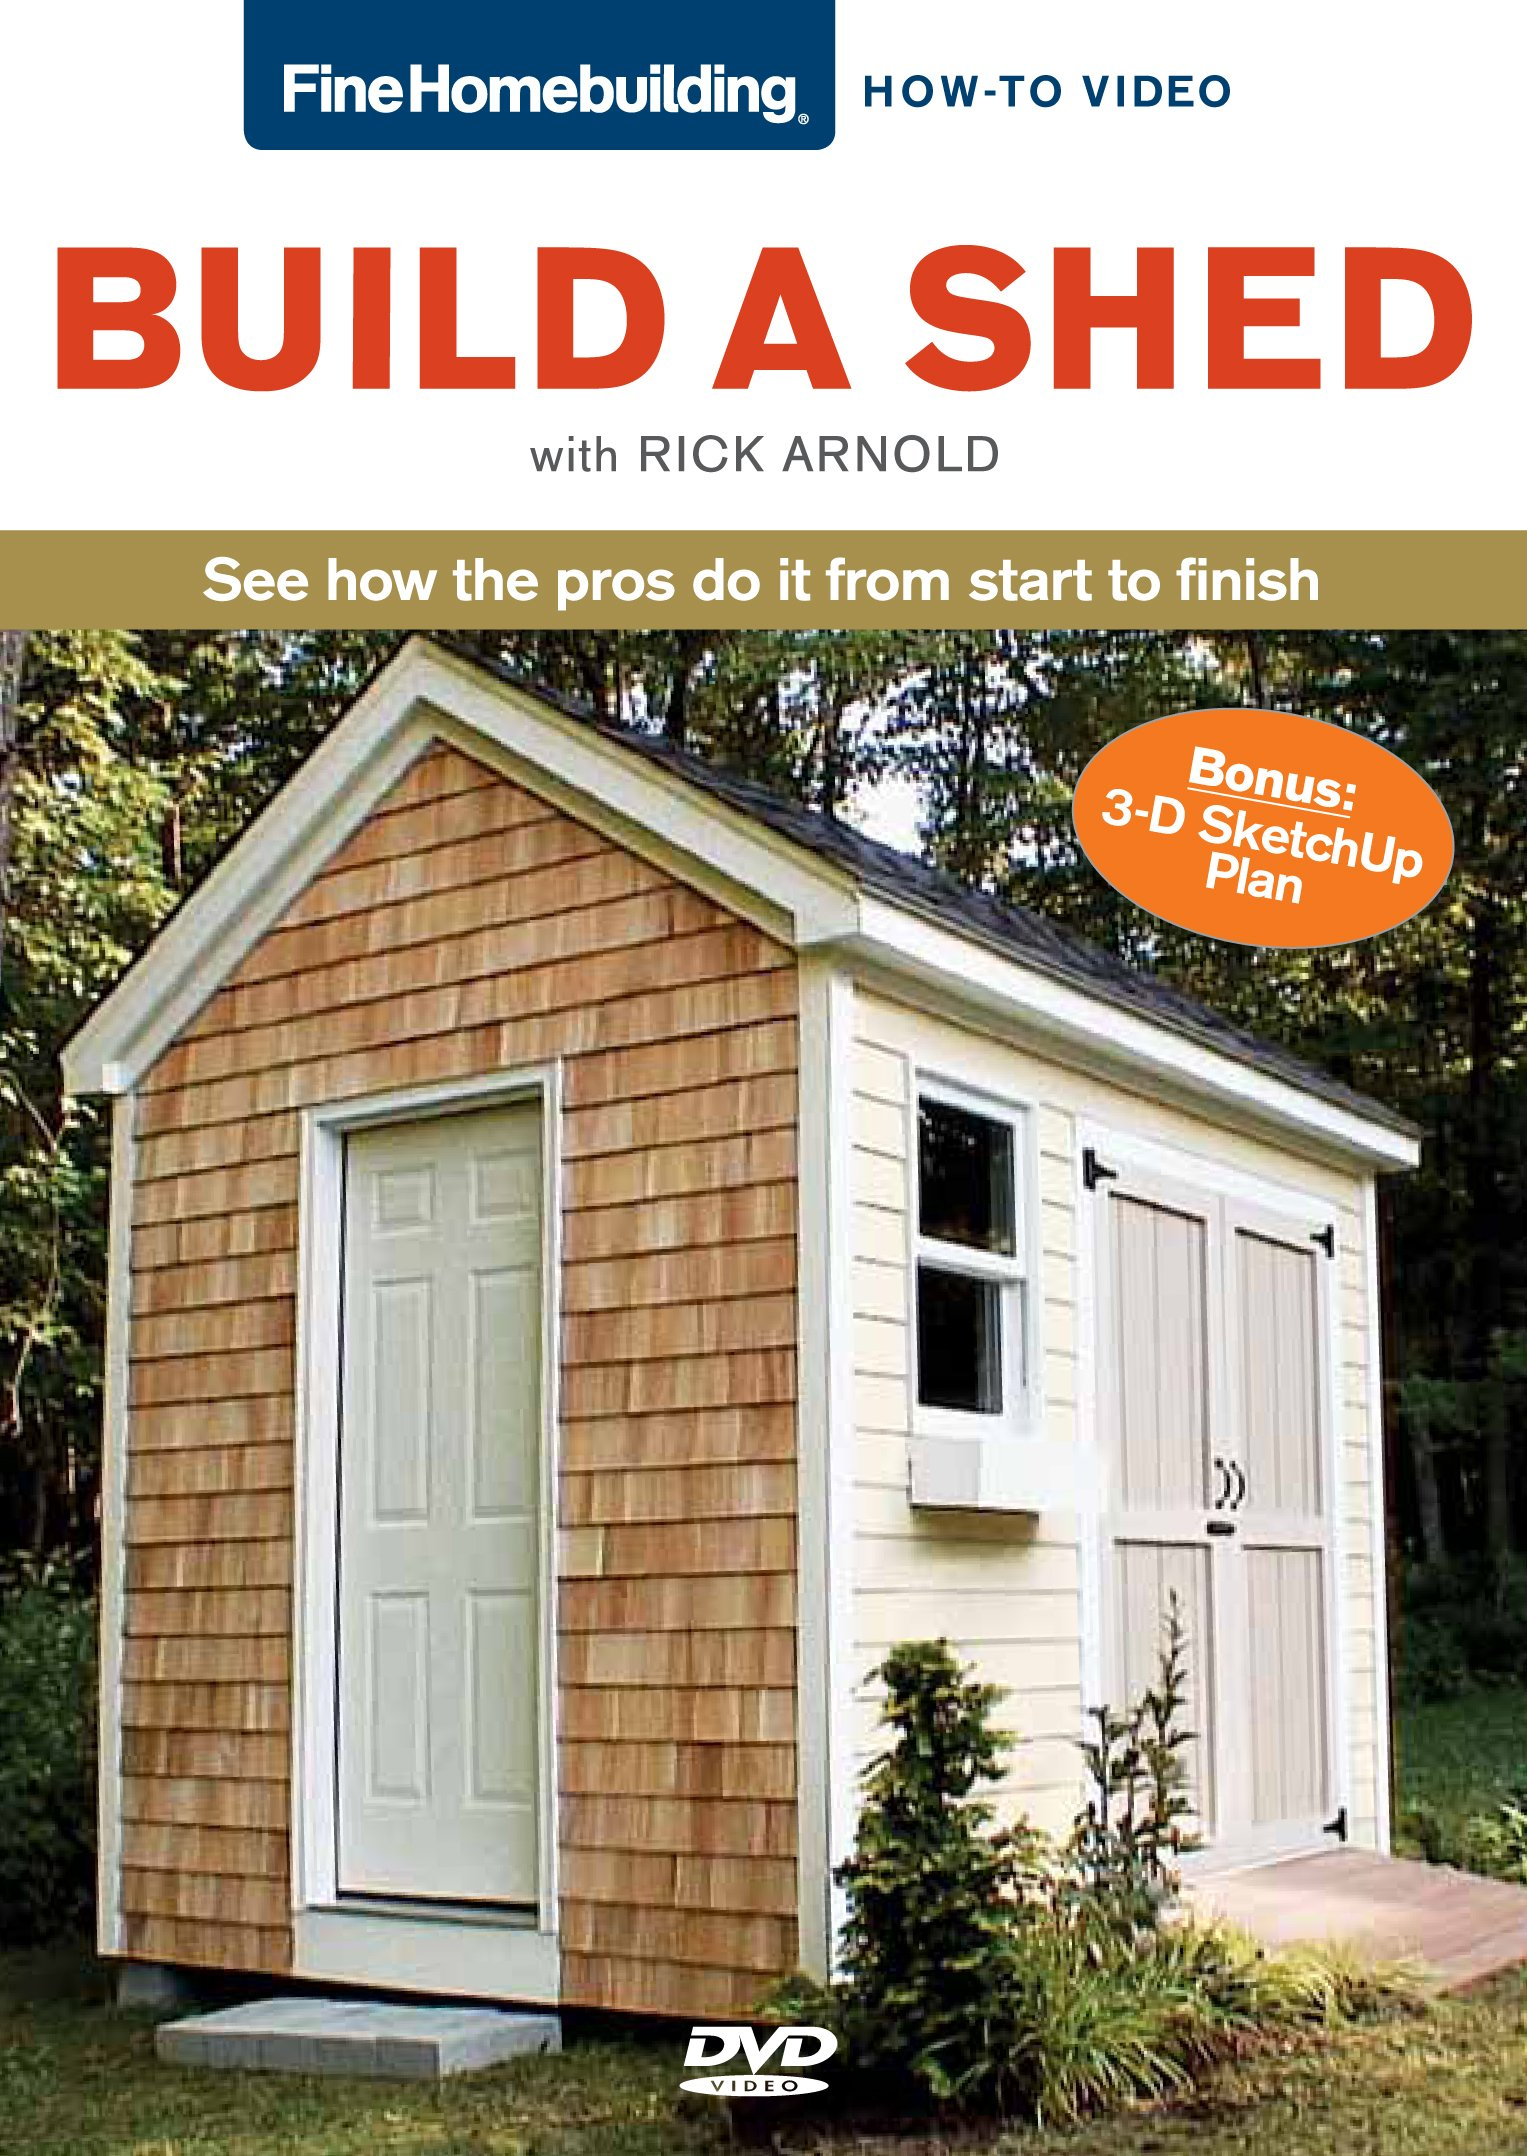 Fine Homebuilding How To Video Series Build a Shed